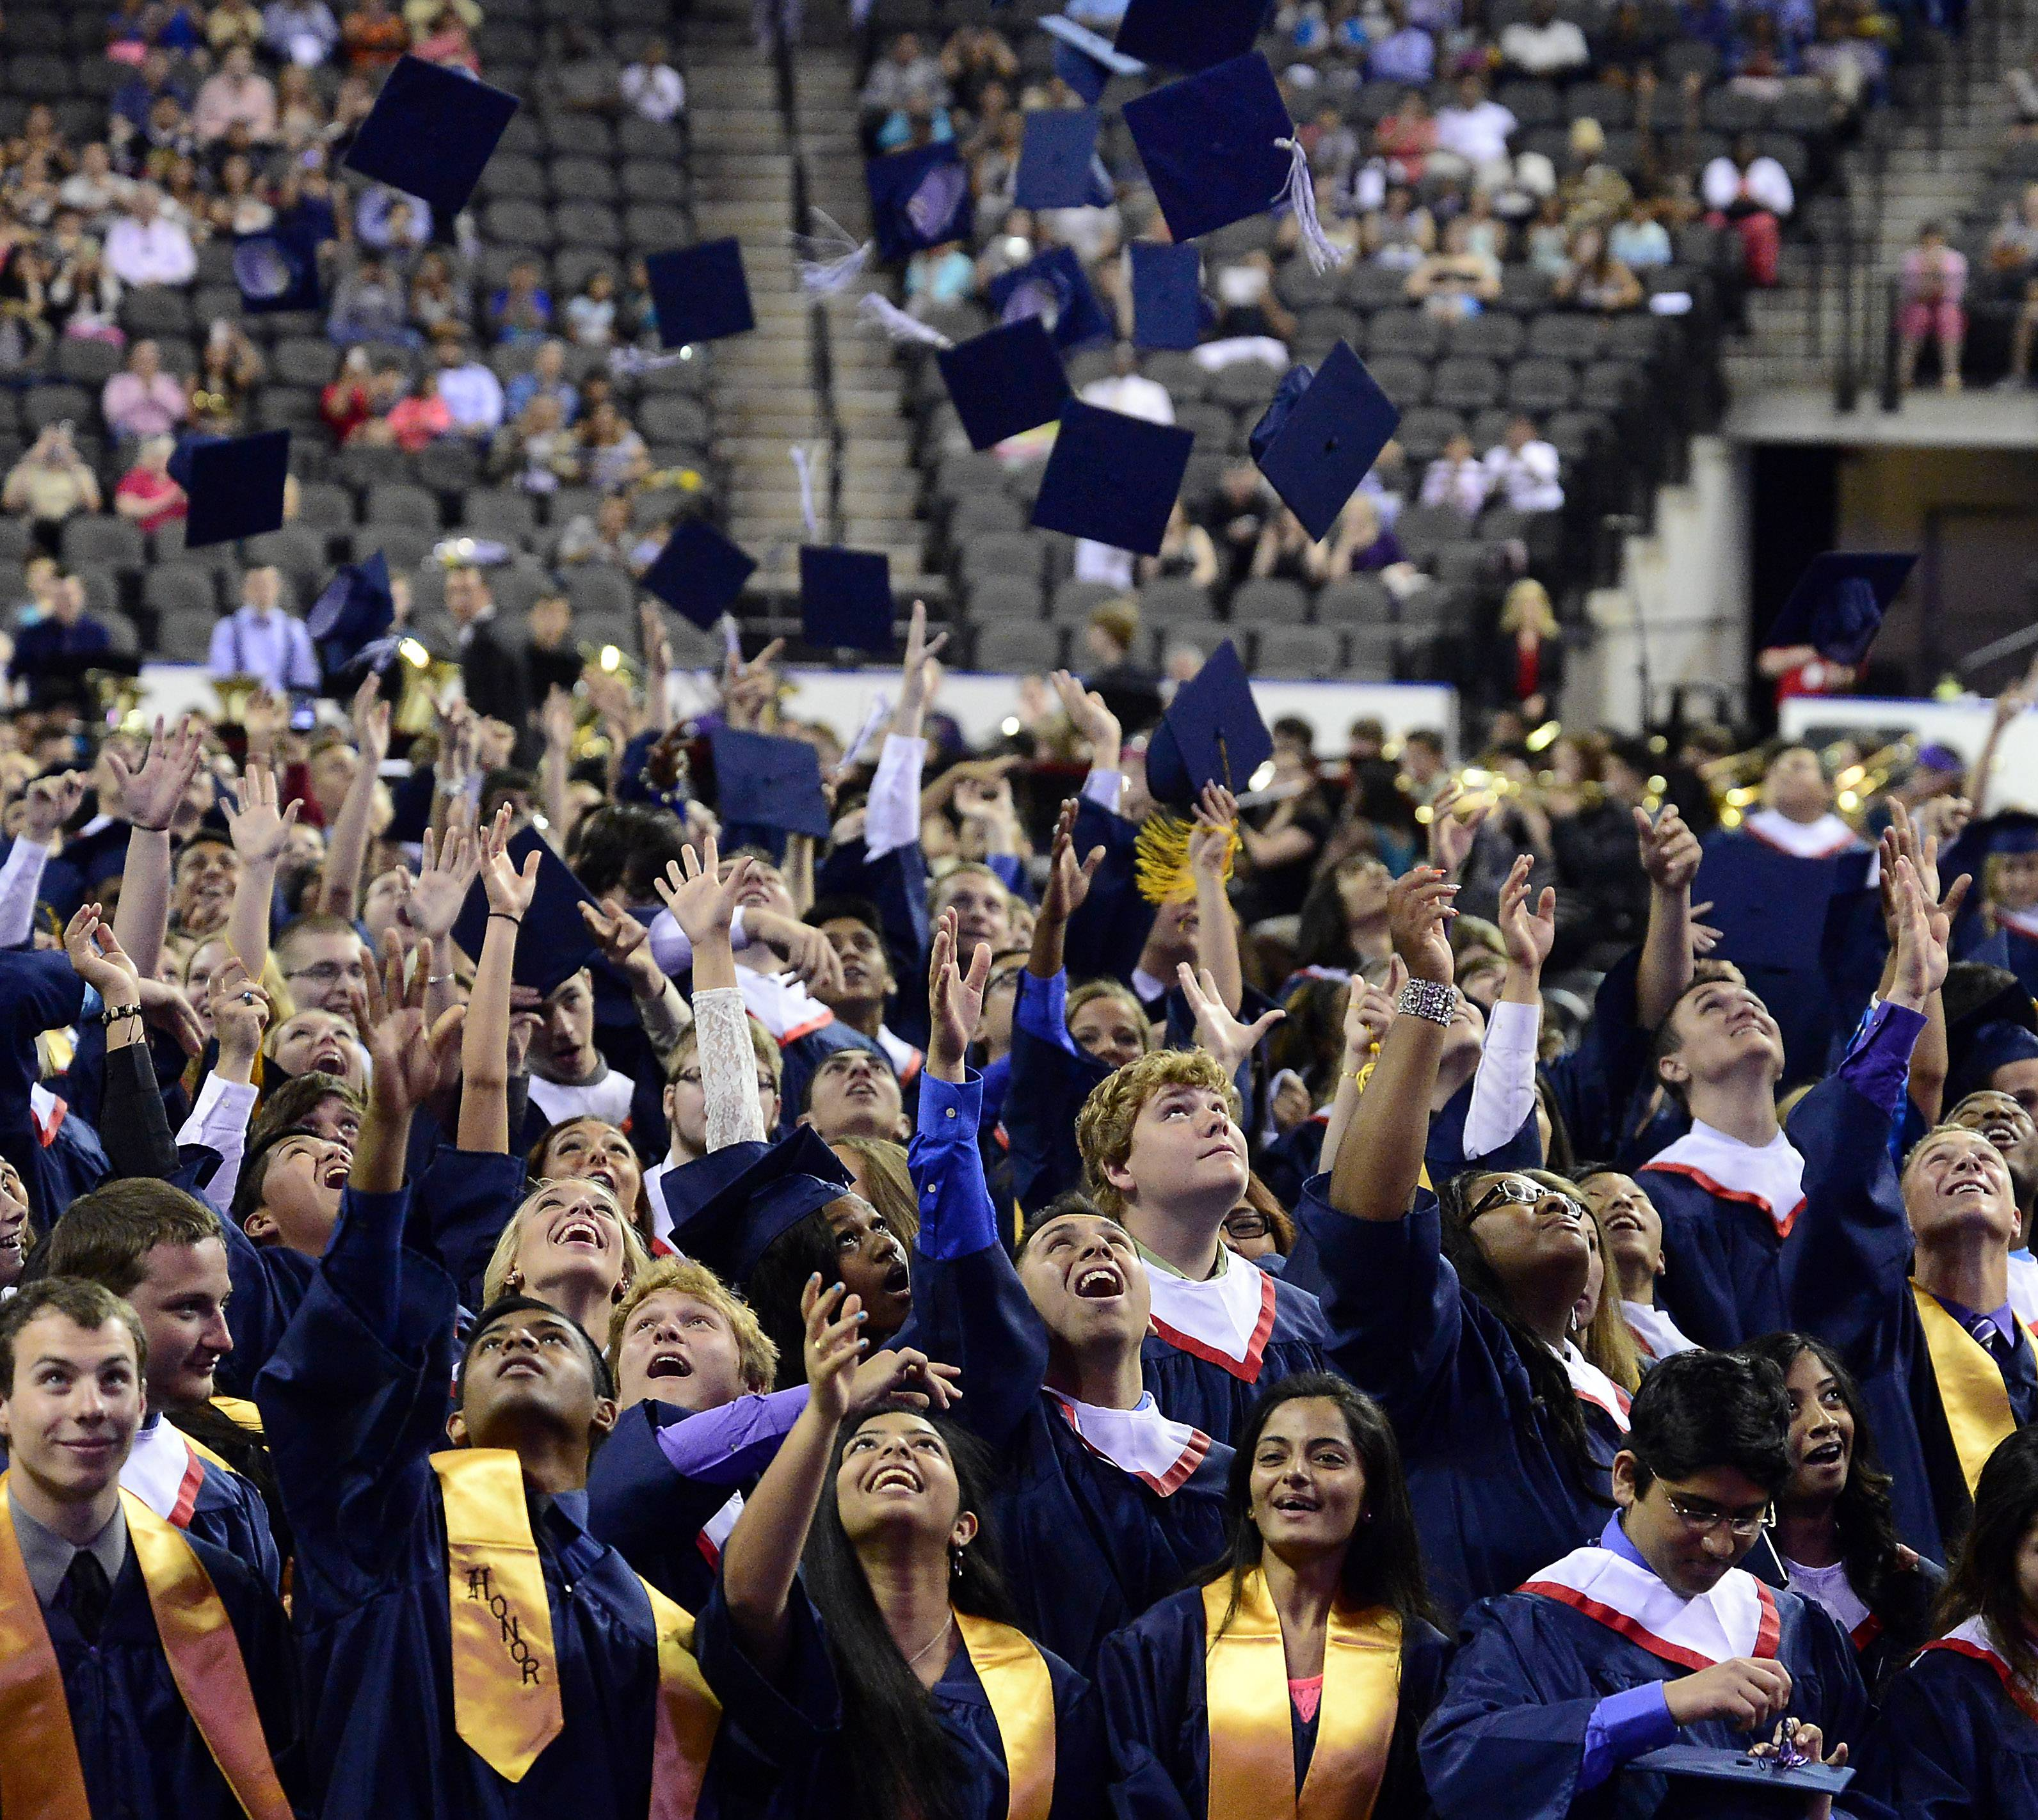 Mark Welsh/mwelsh@dailyherald.comThe graduation caps fly as Conant says goodbye to their four years of high school as their 49th annual commencement comes to an end at the Sears Centre on Sunday.